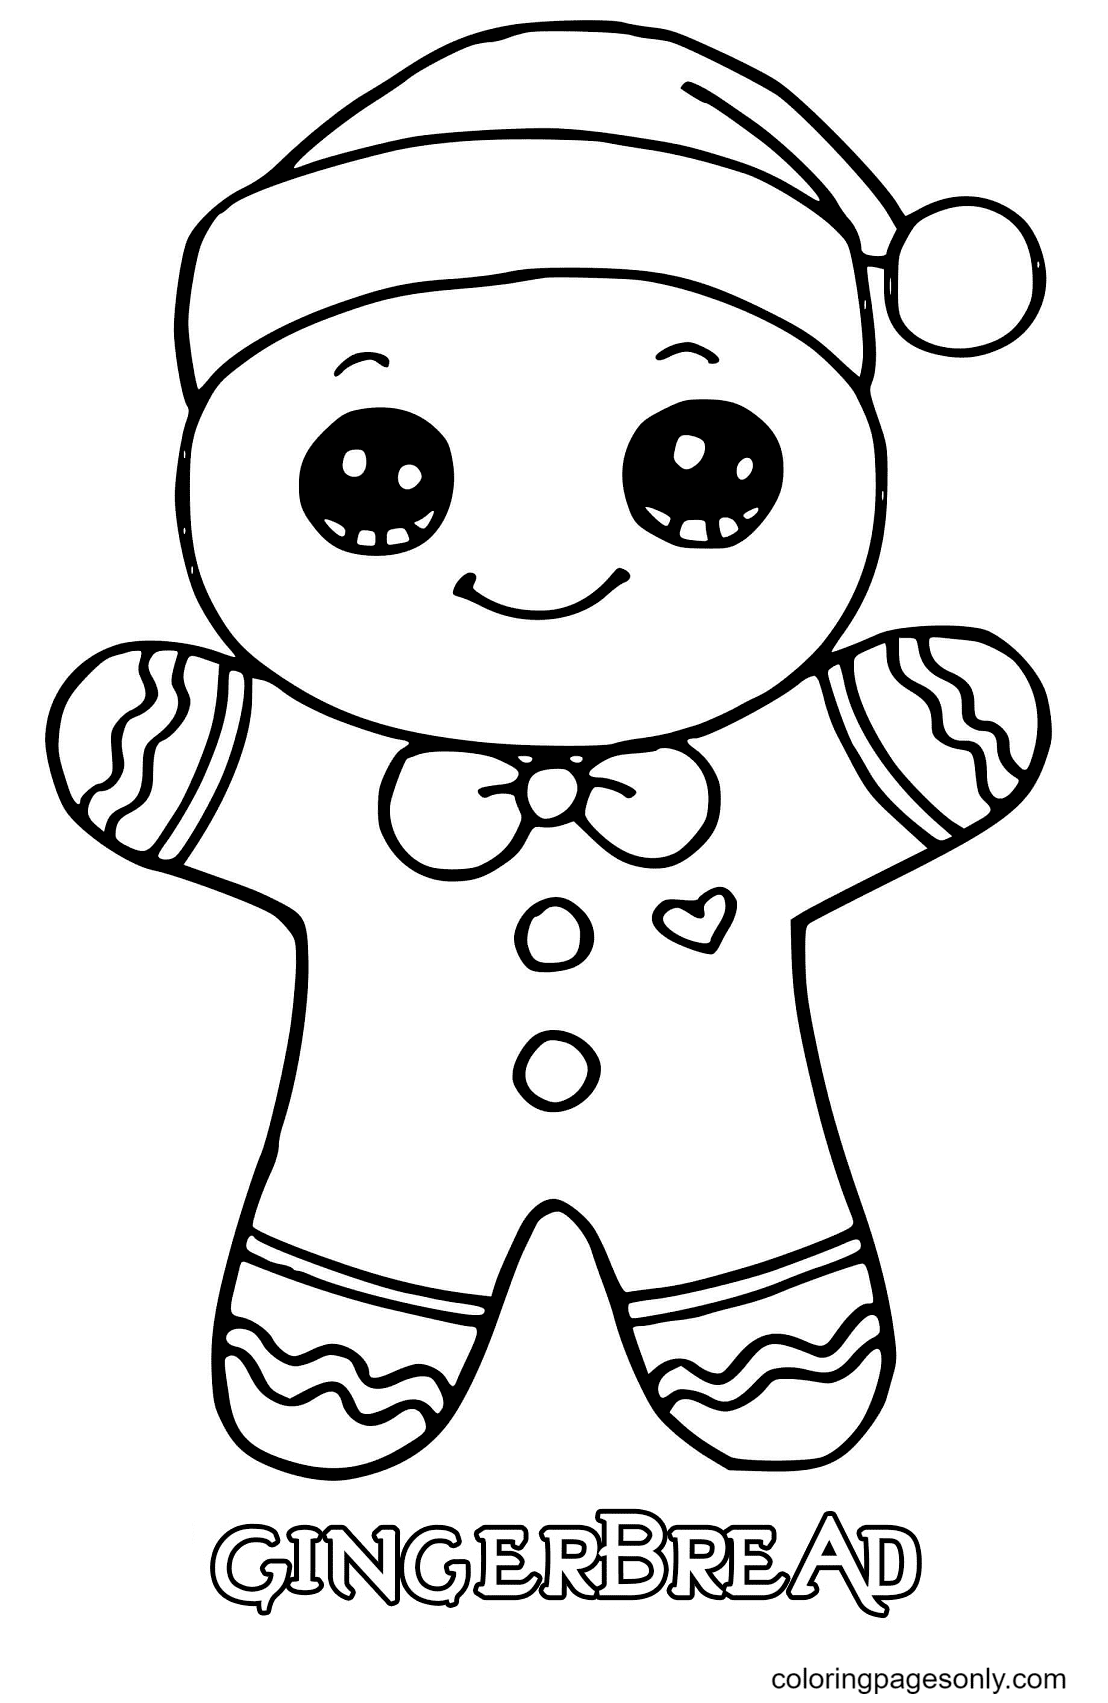 Gingerbread Man Christmas Coloring Page